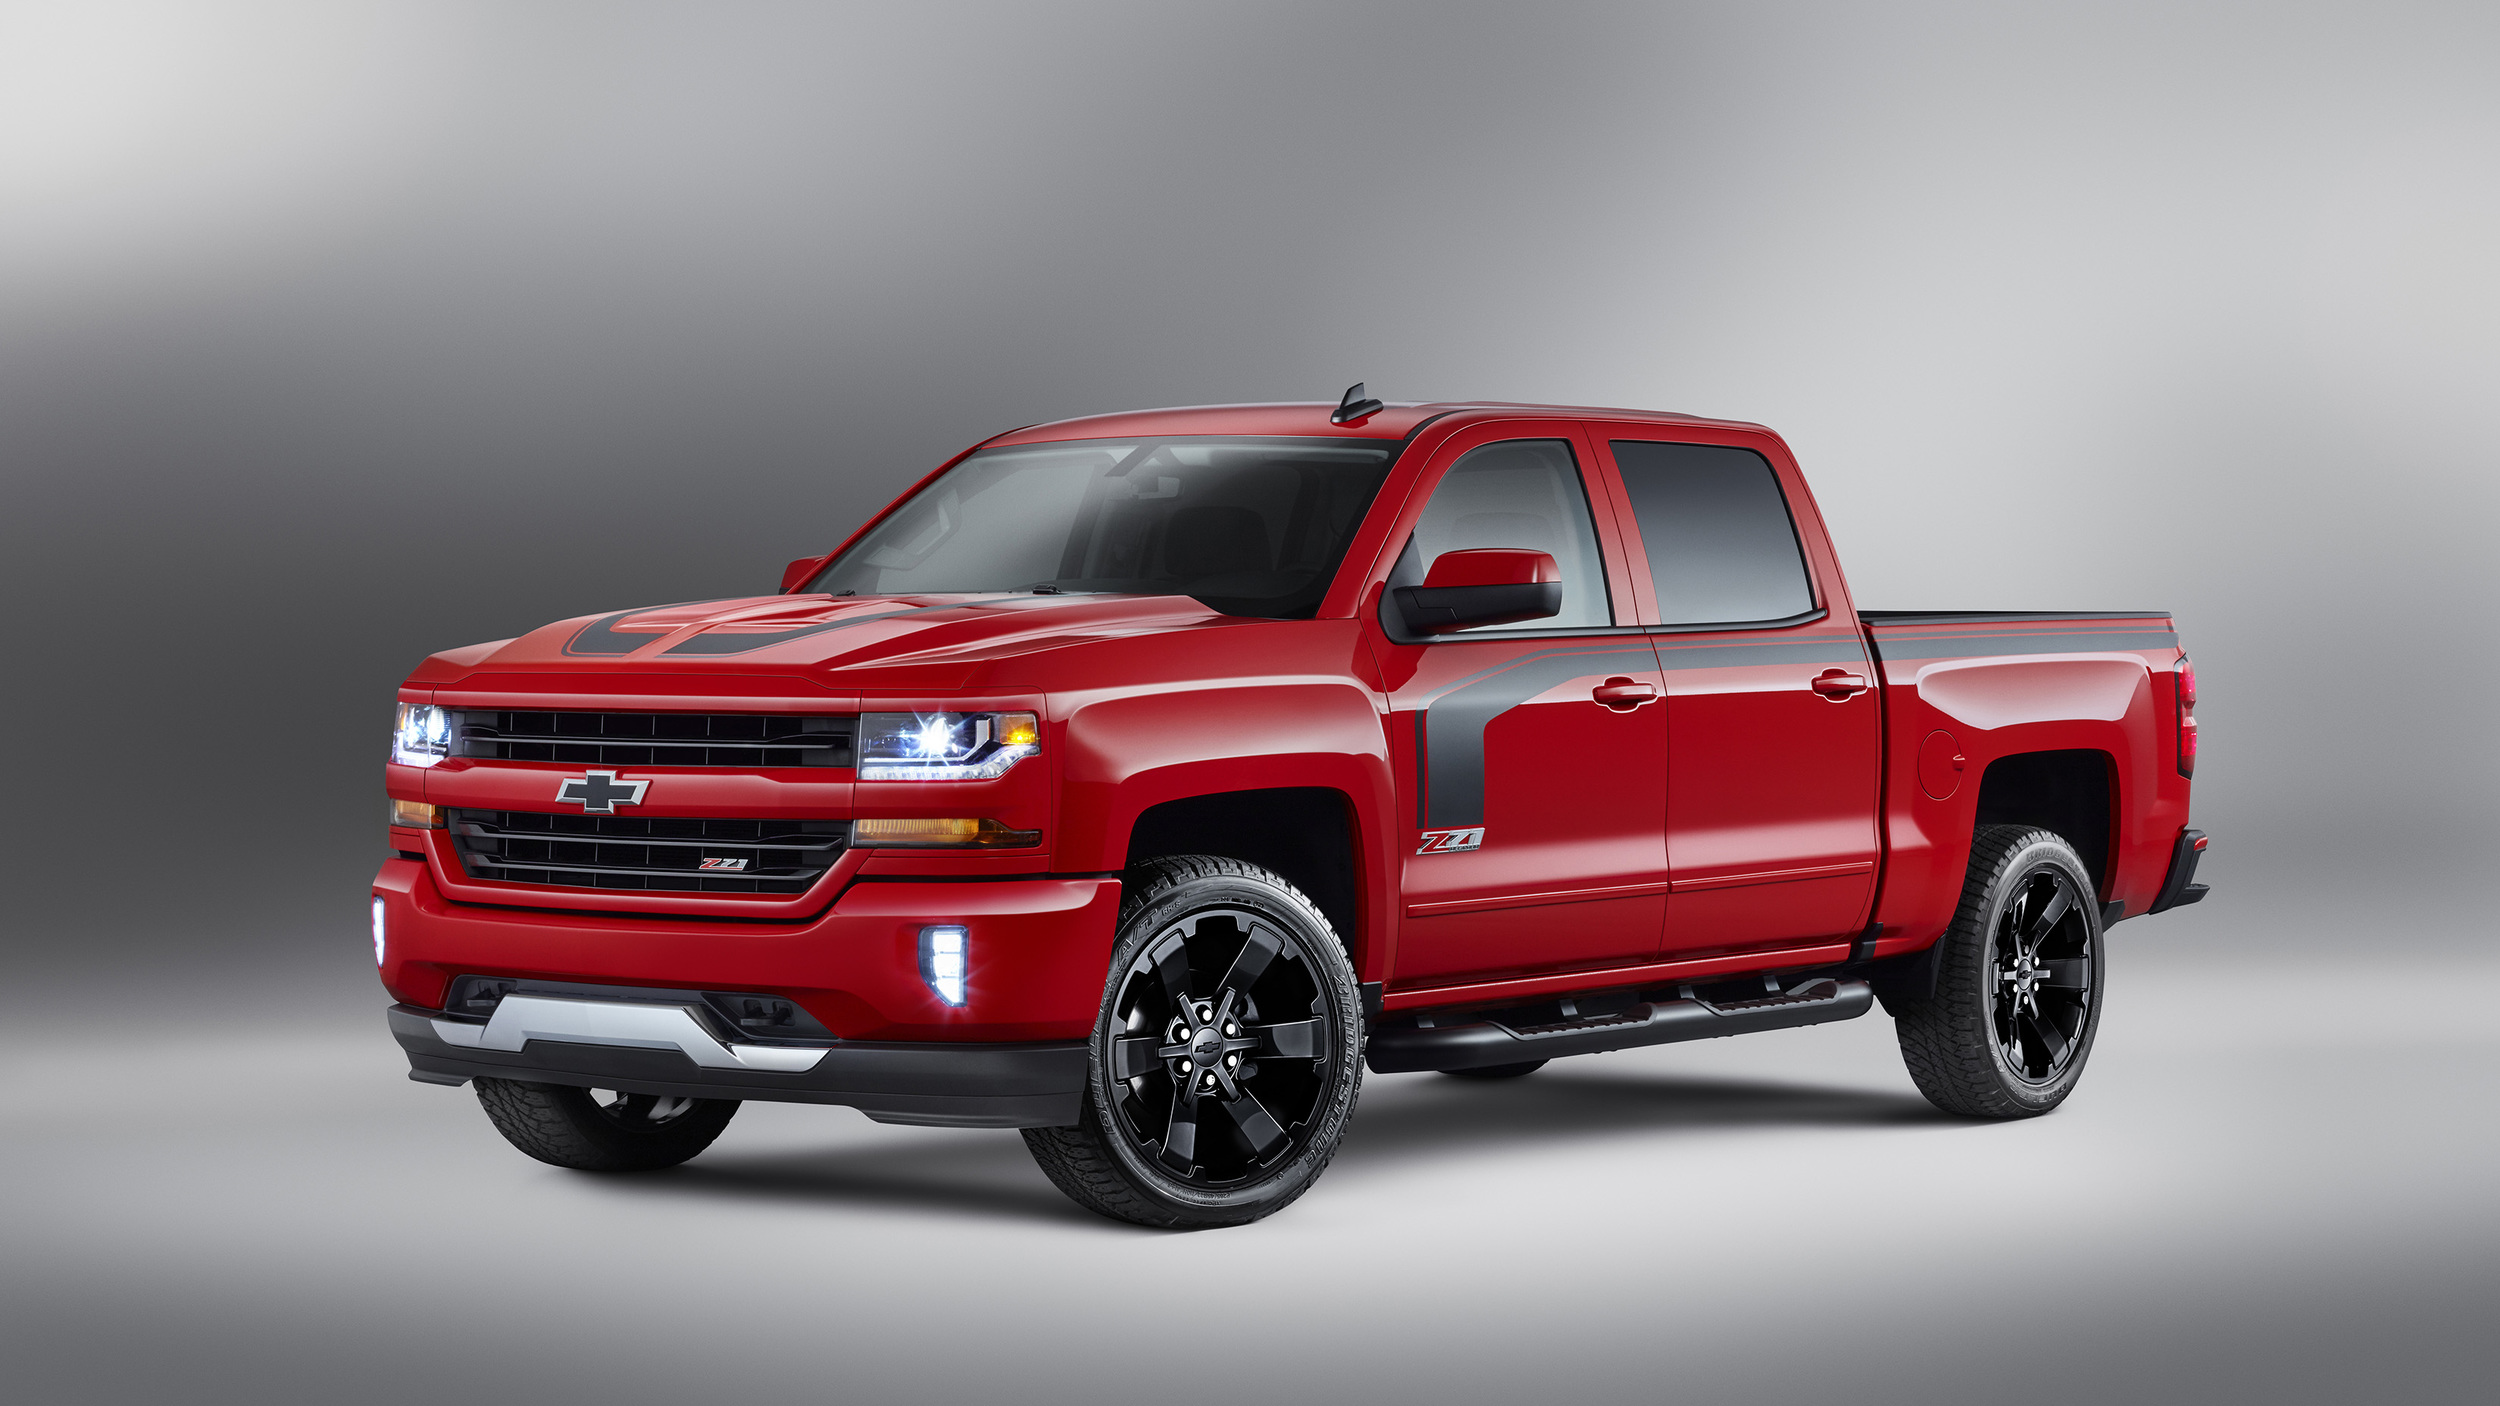 silverado country high chevrolet led wallpaper c headlights hd cars images